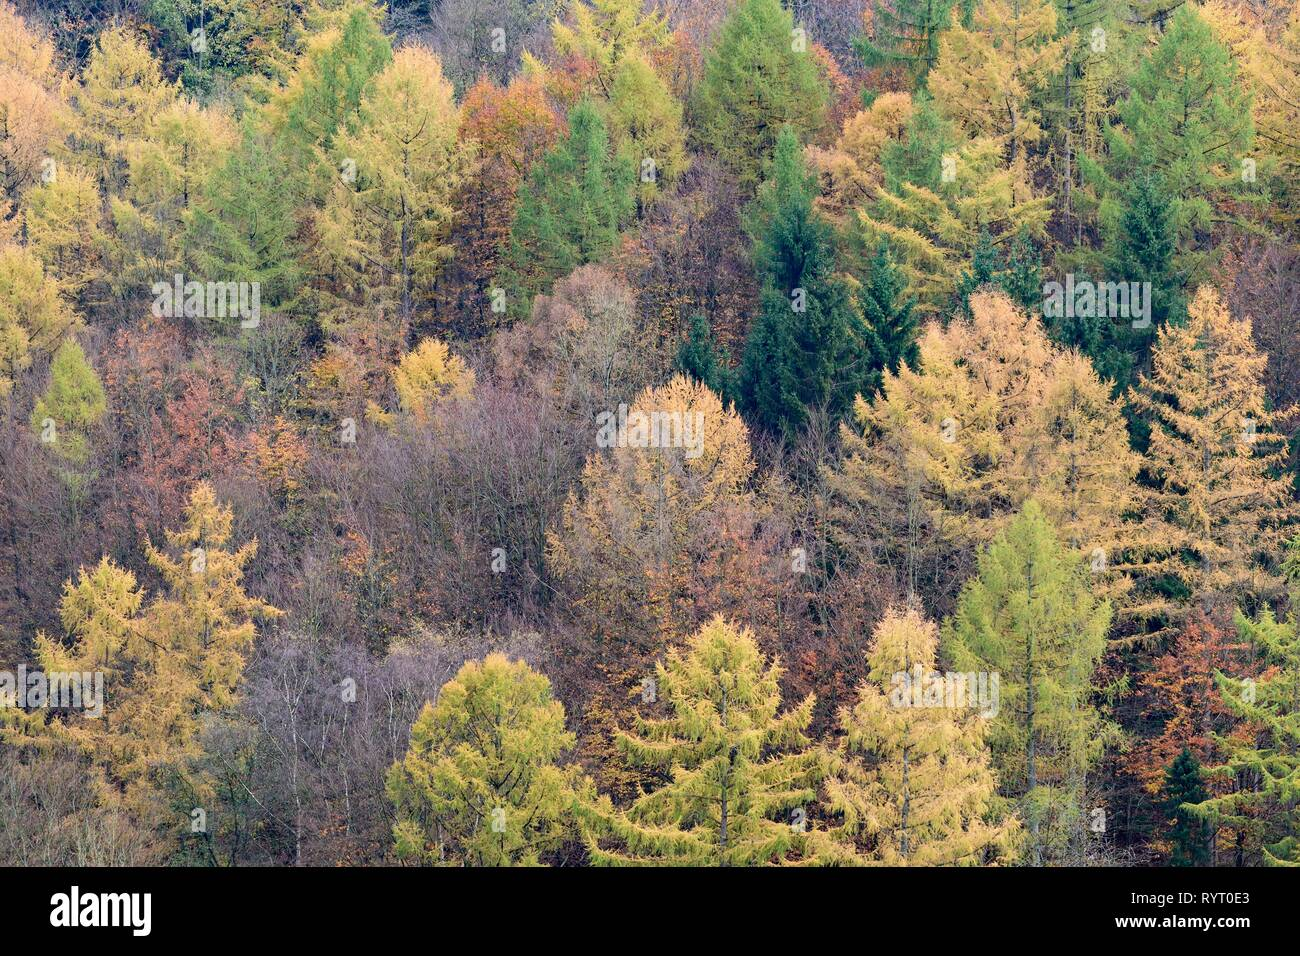 Mixed forest with Larches (Larix), spruces (Picea abies) and Common beeches (Fagus sylvatica) in autumn, Sauerland-Rothaar - Stock Image